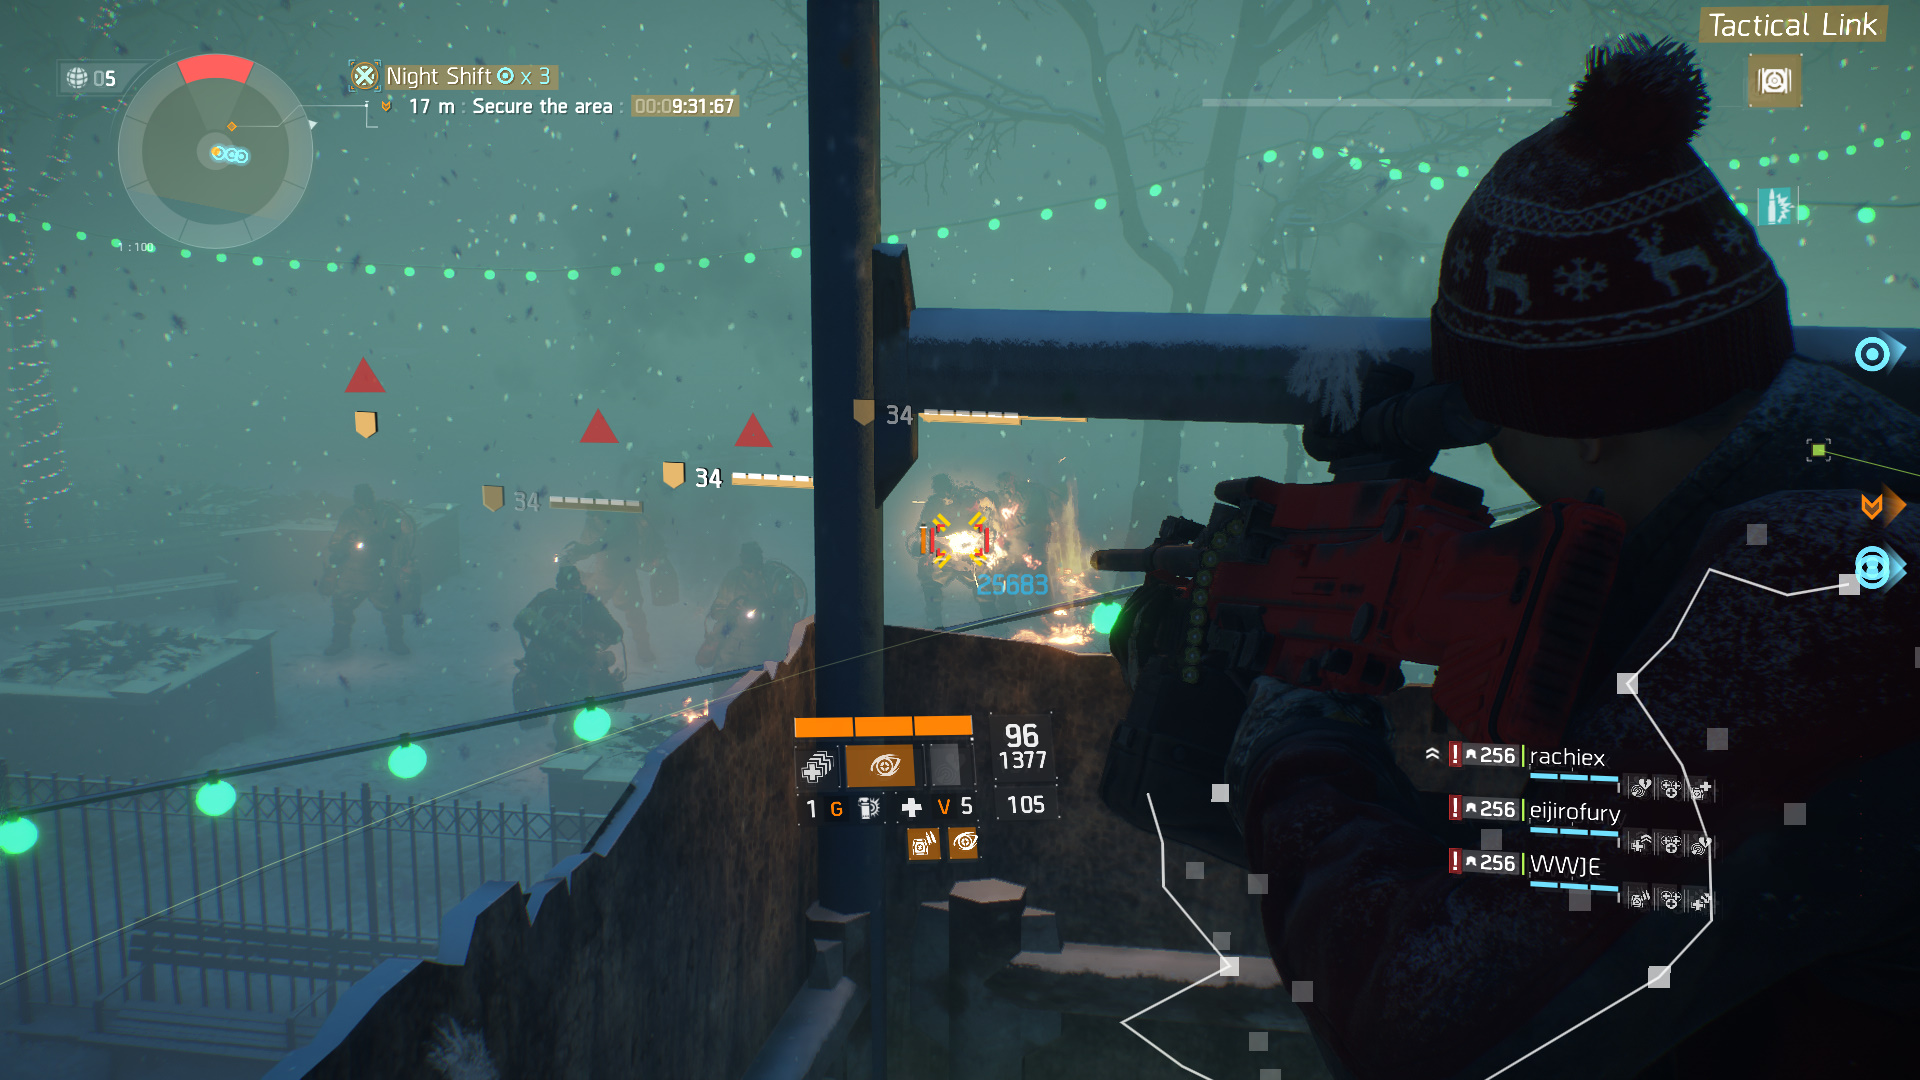 The Division.   Ubisoft's snowdrop engine is another one that uses more than 4 cores of a processor. DX12 was recently implemented. Division does extra streaming in of assets in the background, instead of fade to black area transitioning: even virtual hyperthread cores are helpful as extra workers for that particular task.